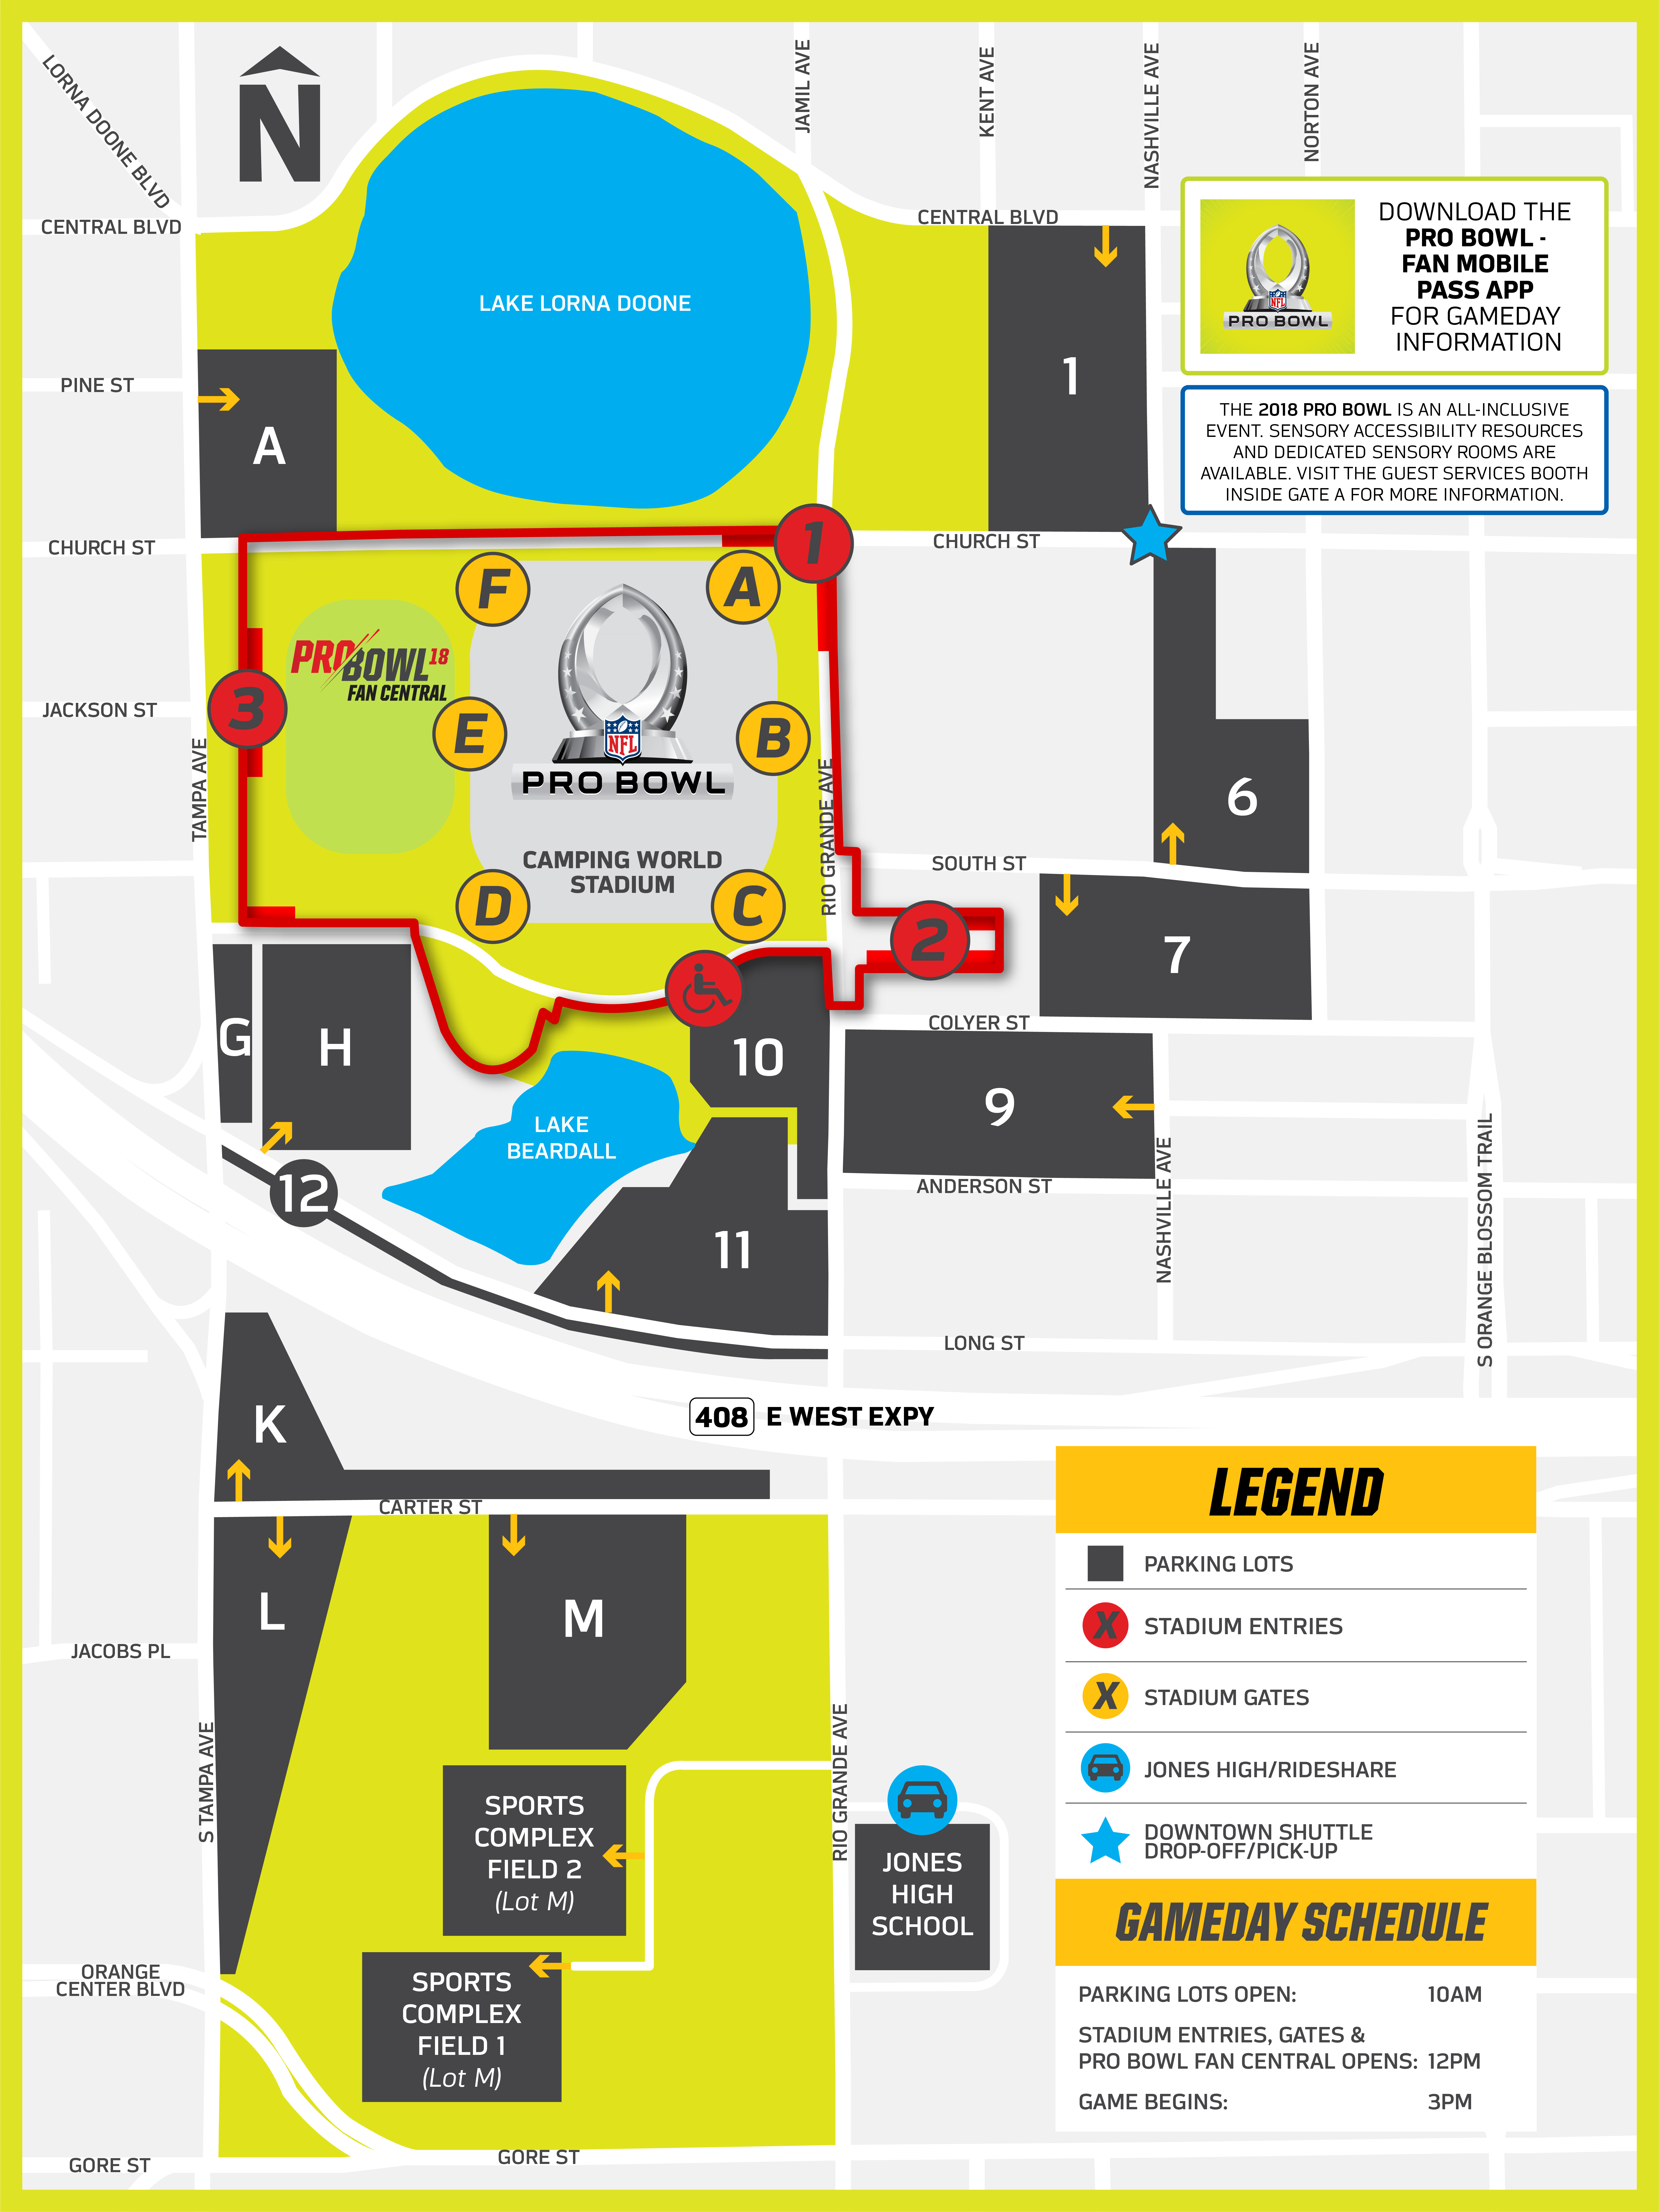 2018 Pro Bowl Gameday Nfl Football Field Diagram For Exclusive Access To Content Register Fan Mobile Pass By Visiting Pbfanmobilepass Download The